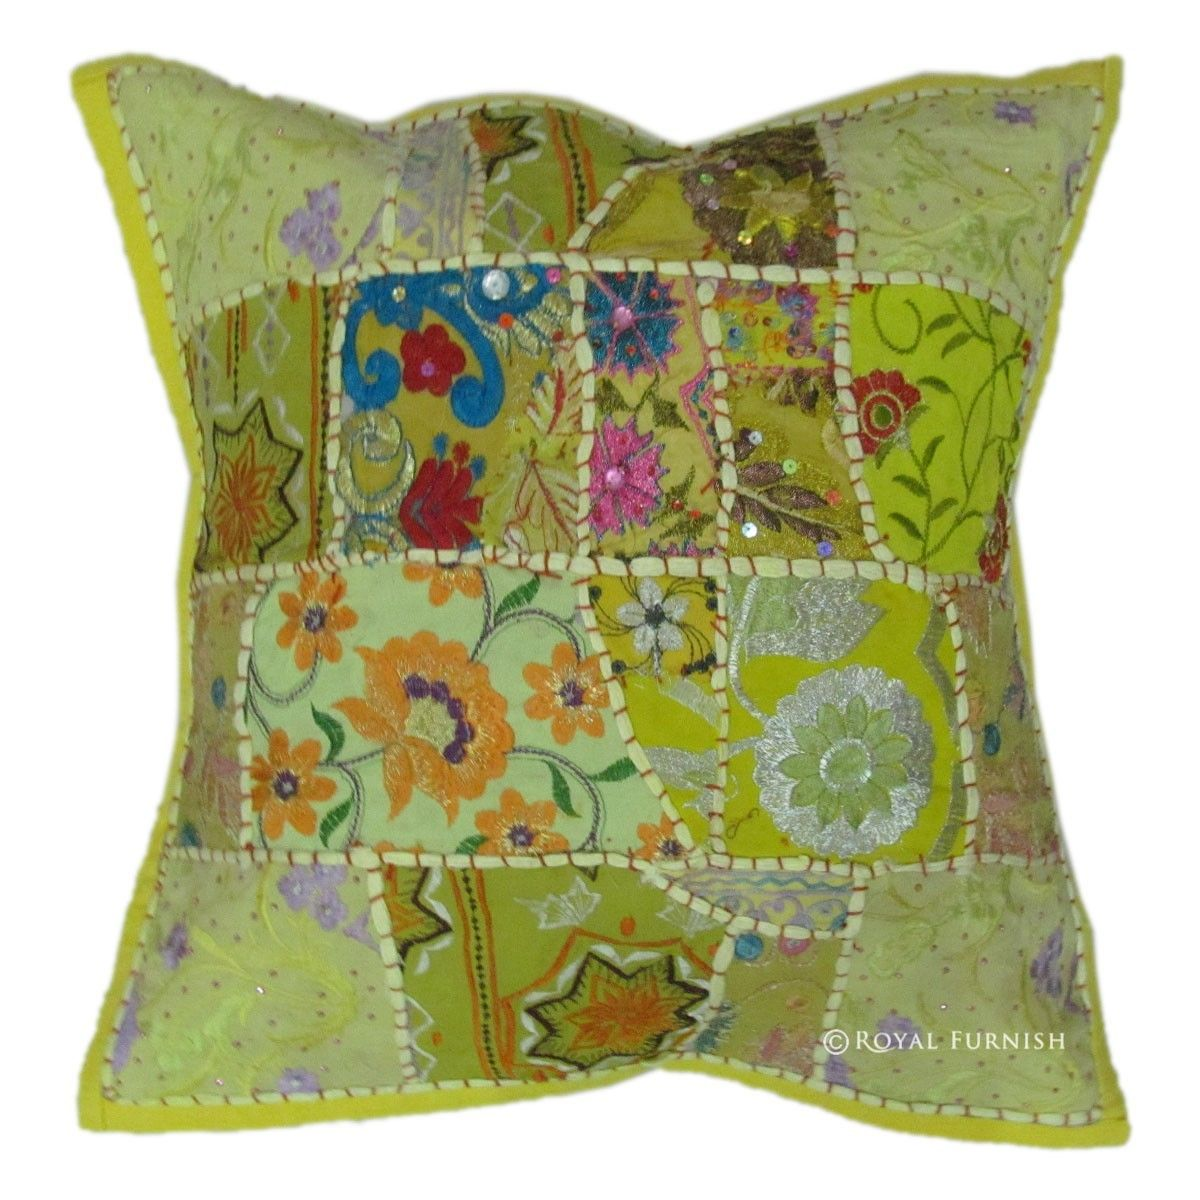 Yellow Embroidered Throw Pillows : 17x17 Yellow Indian Vintage Decorative Patchwork Embroidered Throw Pillow - RoyalFurnish.com